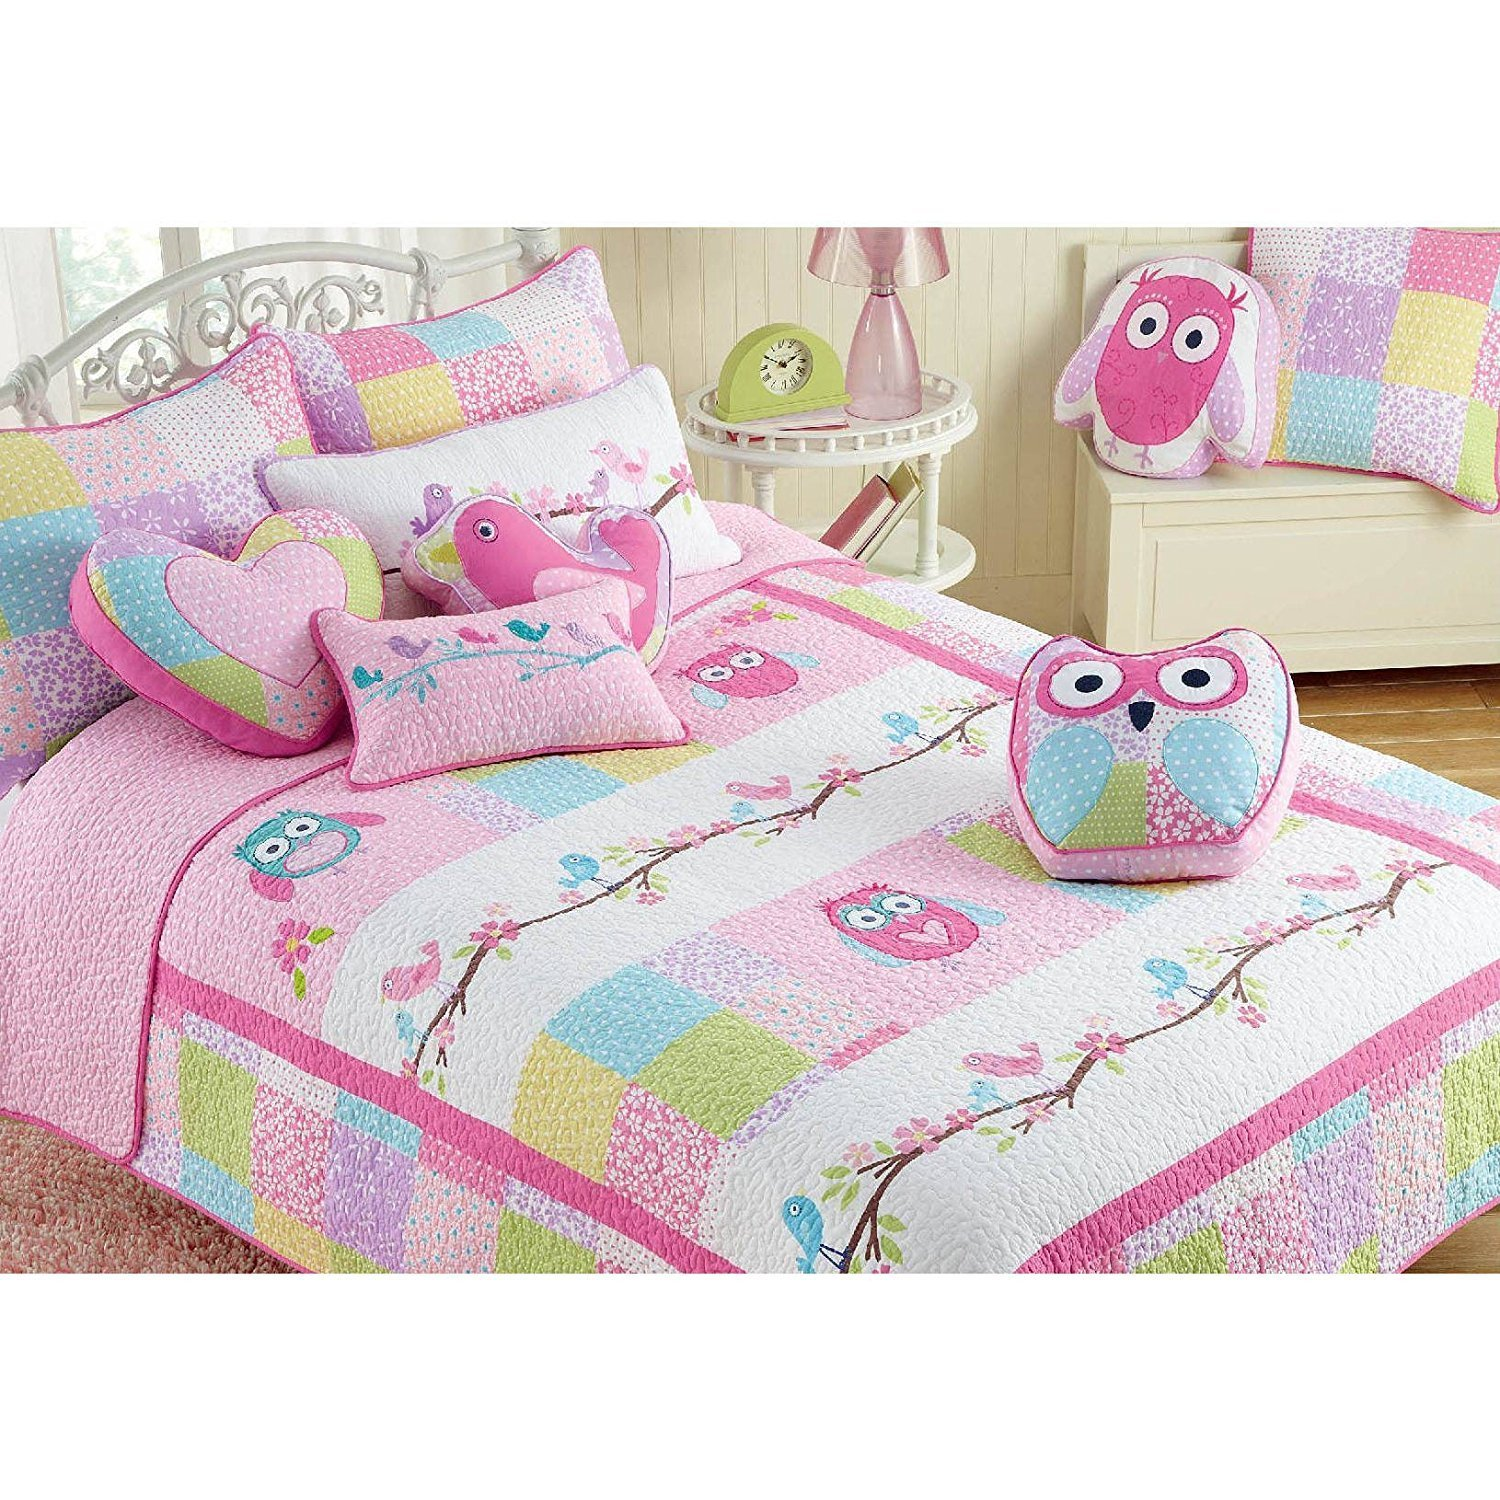 2pc Kids Girls Pink Owl Theme Twin Quilt Set, Polyester, Nocturnal Birds Pink White Green Floral Pattern Flowers Horizontal Stripes Dancing Owls Contemporary, Adorable Animal Bedding